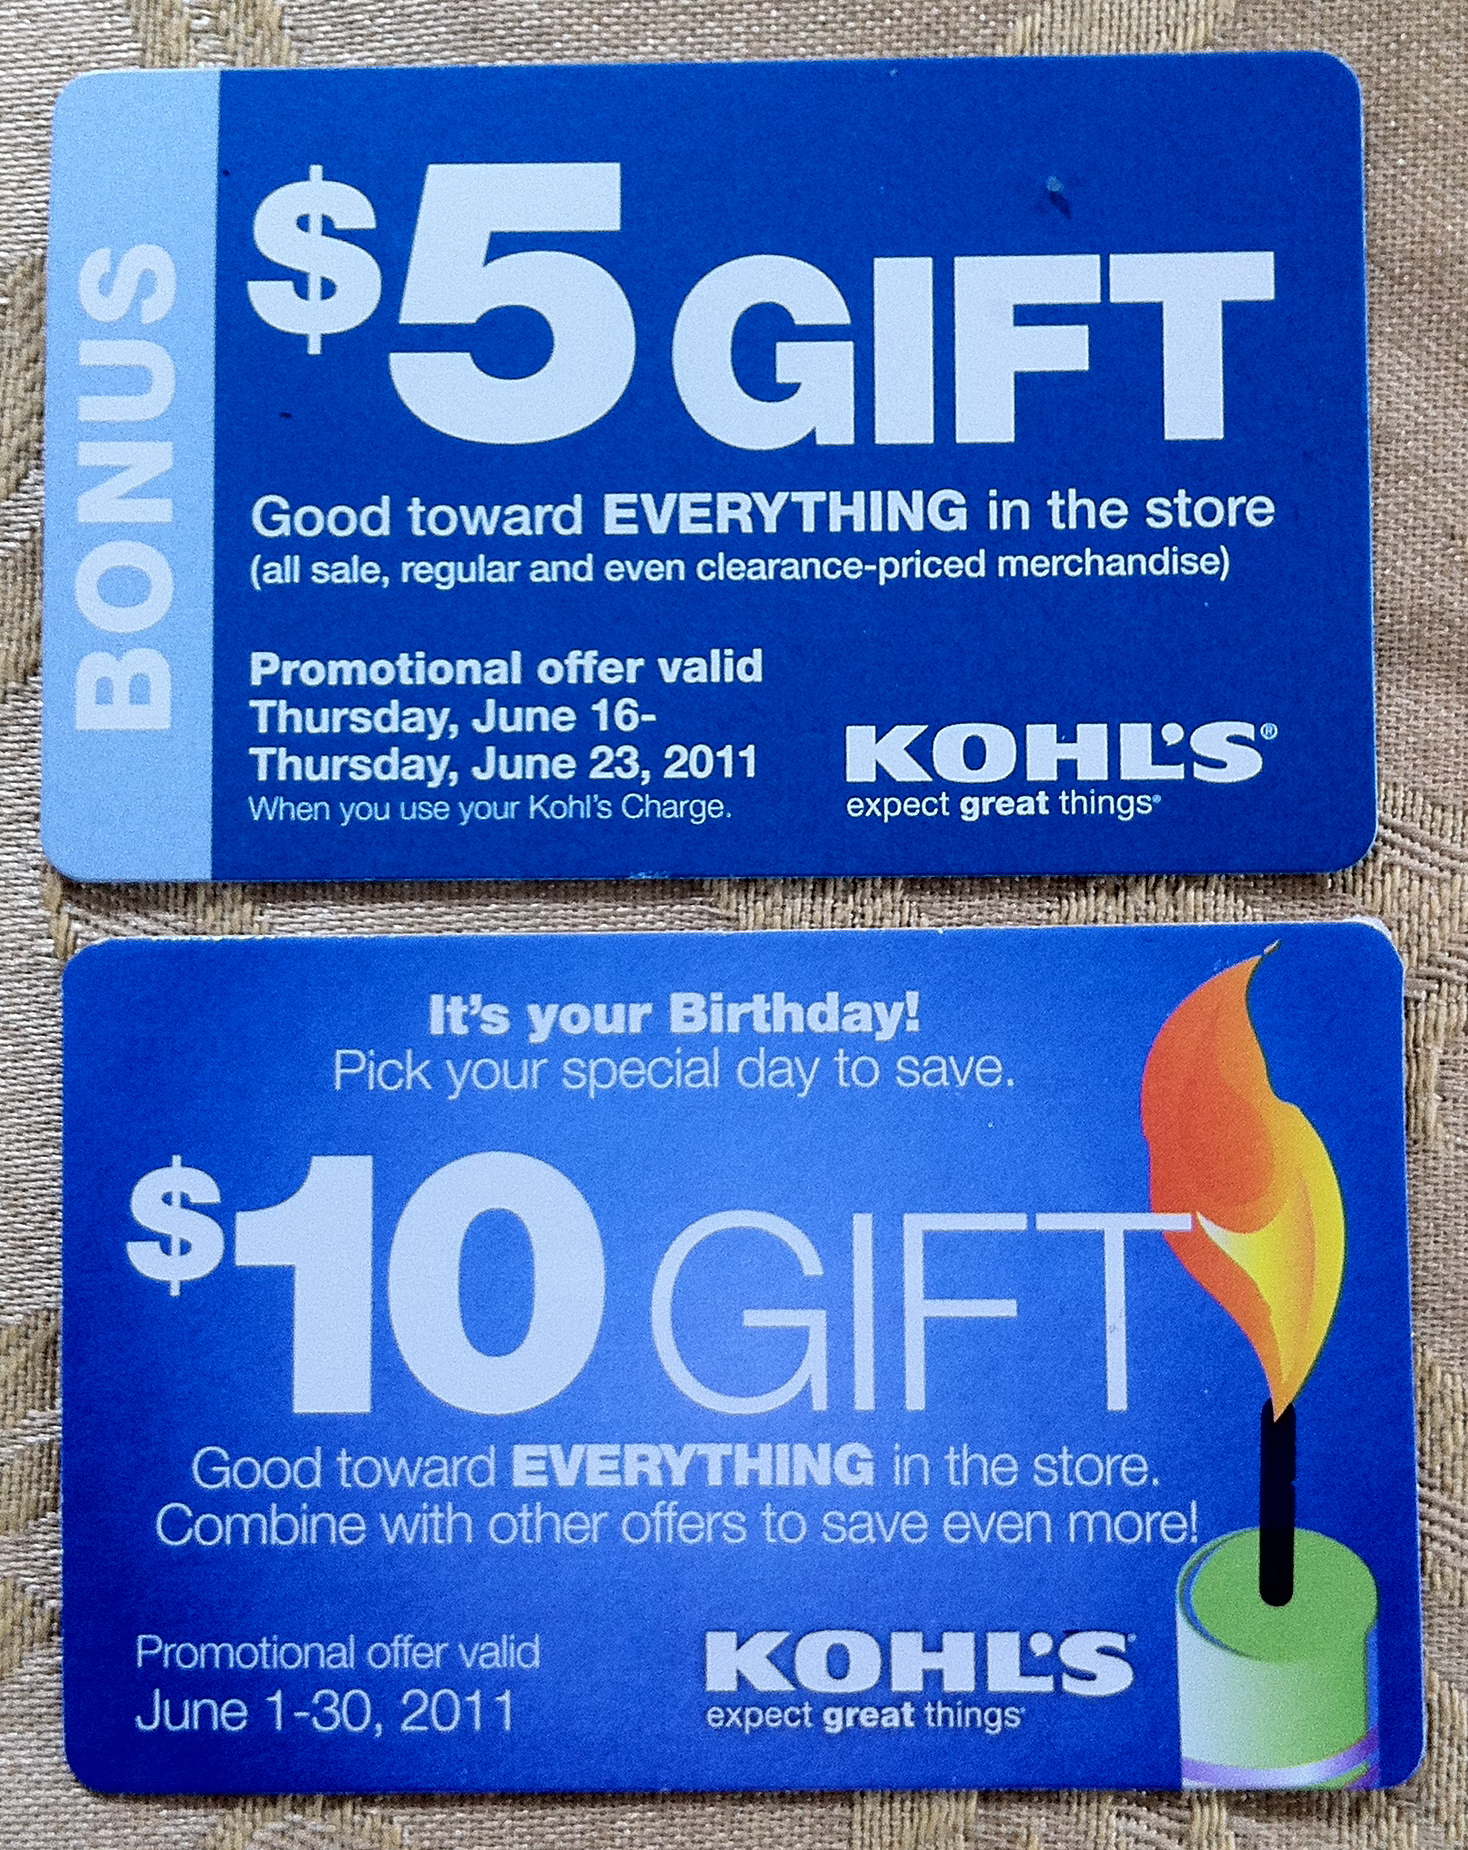 FREE $10 Kohl's Yes2You Rewards for Your Birthday Join Kohl's Yes2You Rewards and they'll send you a free $10 coupon during your birthday month! Plus with Kohl's Yes2You Rewards you'll earn 1 point for each dollar you spend.